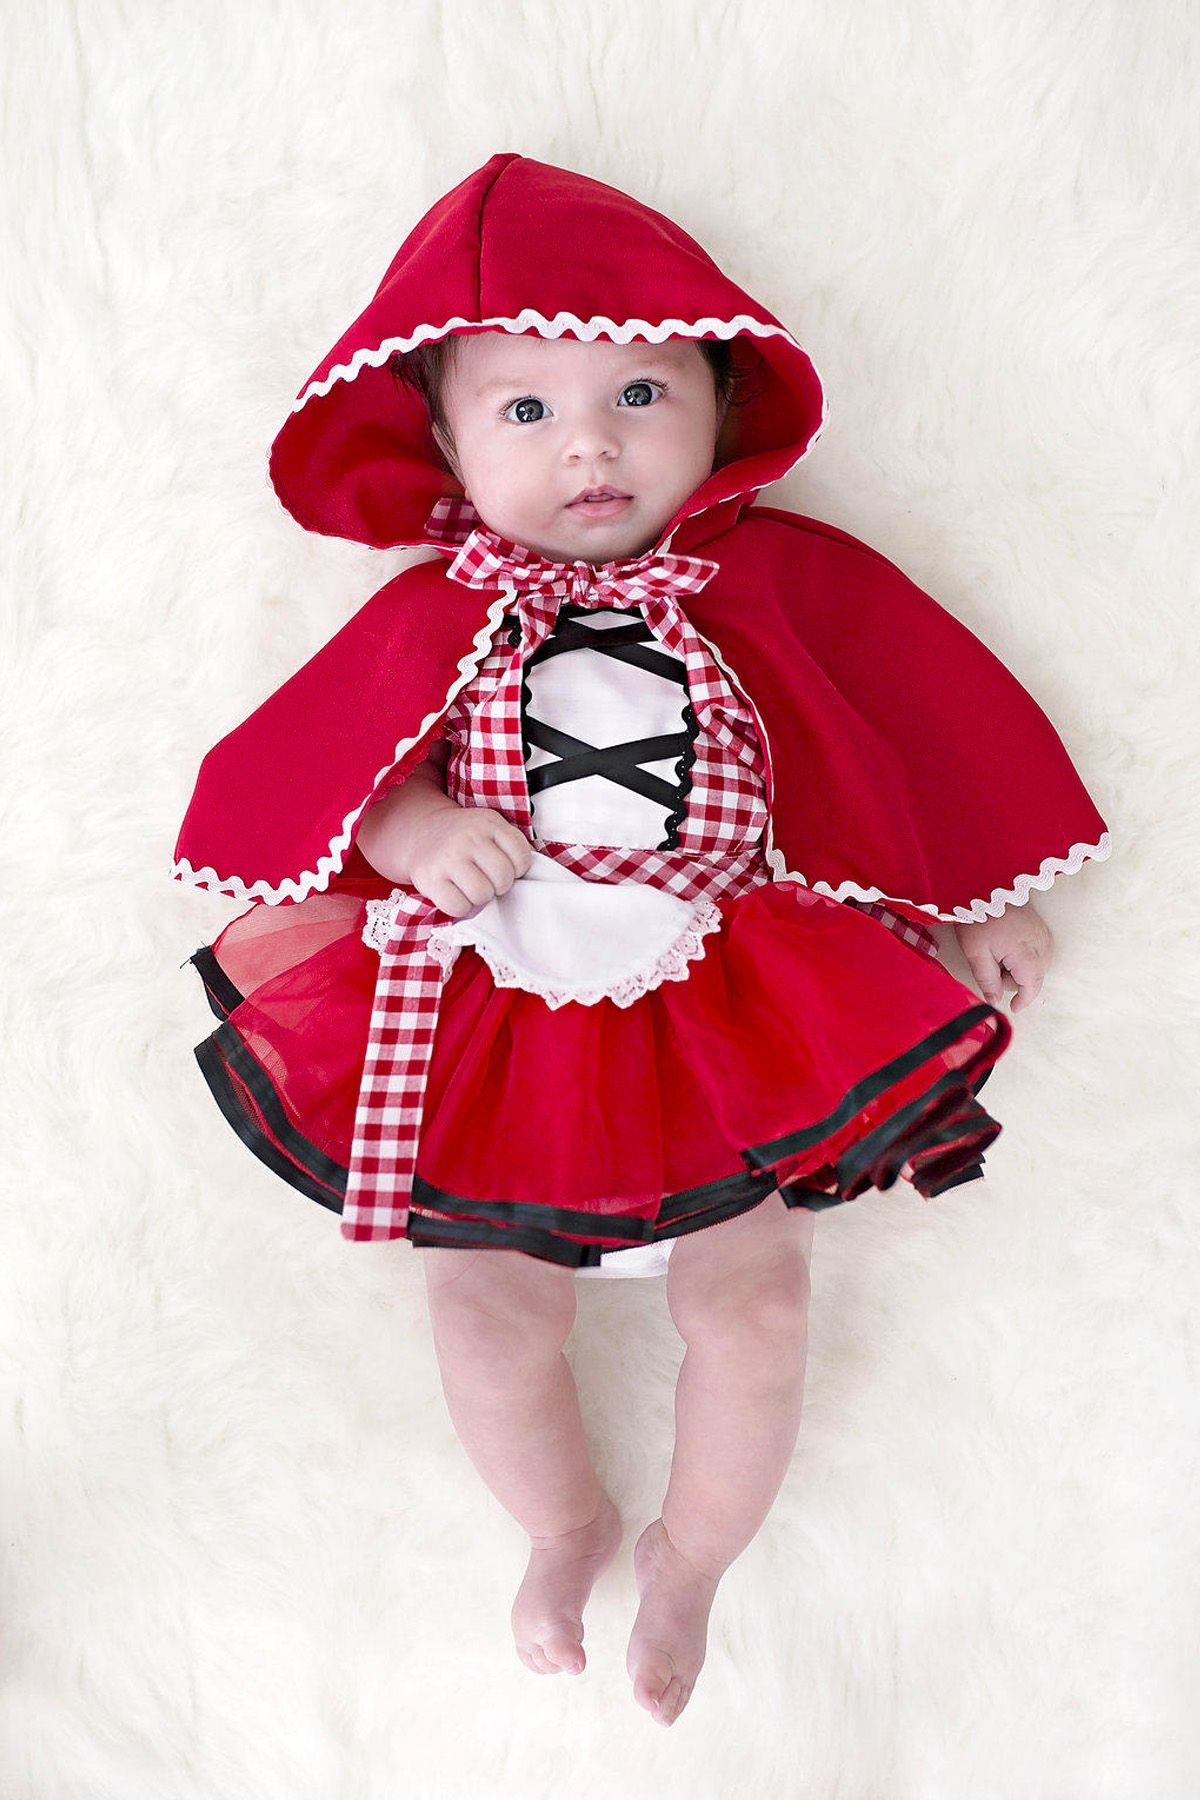 27 cute baby halloween costumes 2018 - best ideas for boy & girl